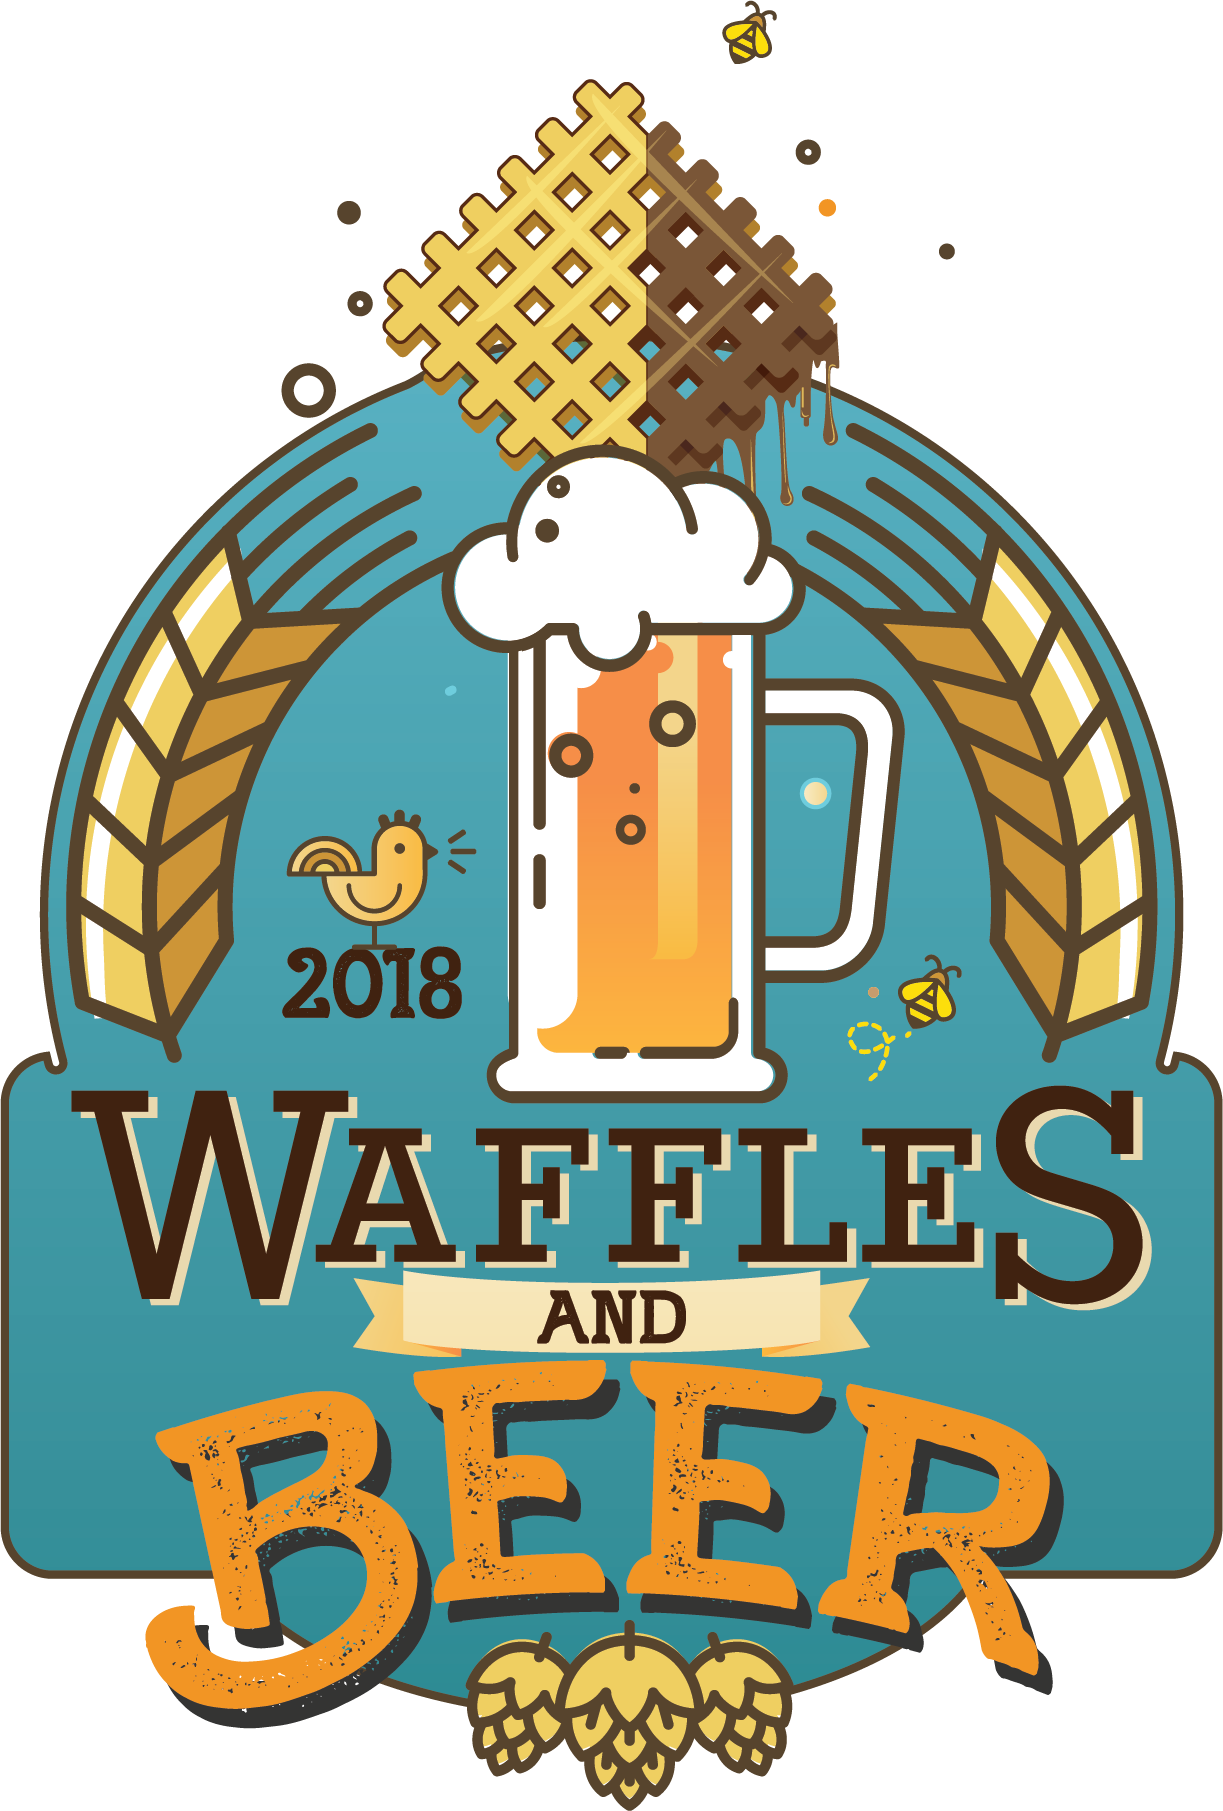 Waffles and beer festival. Waffle clipart square waffle